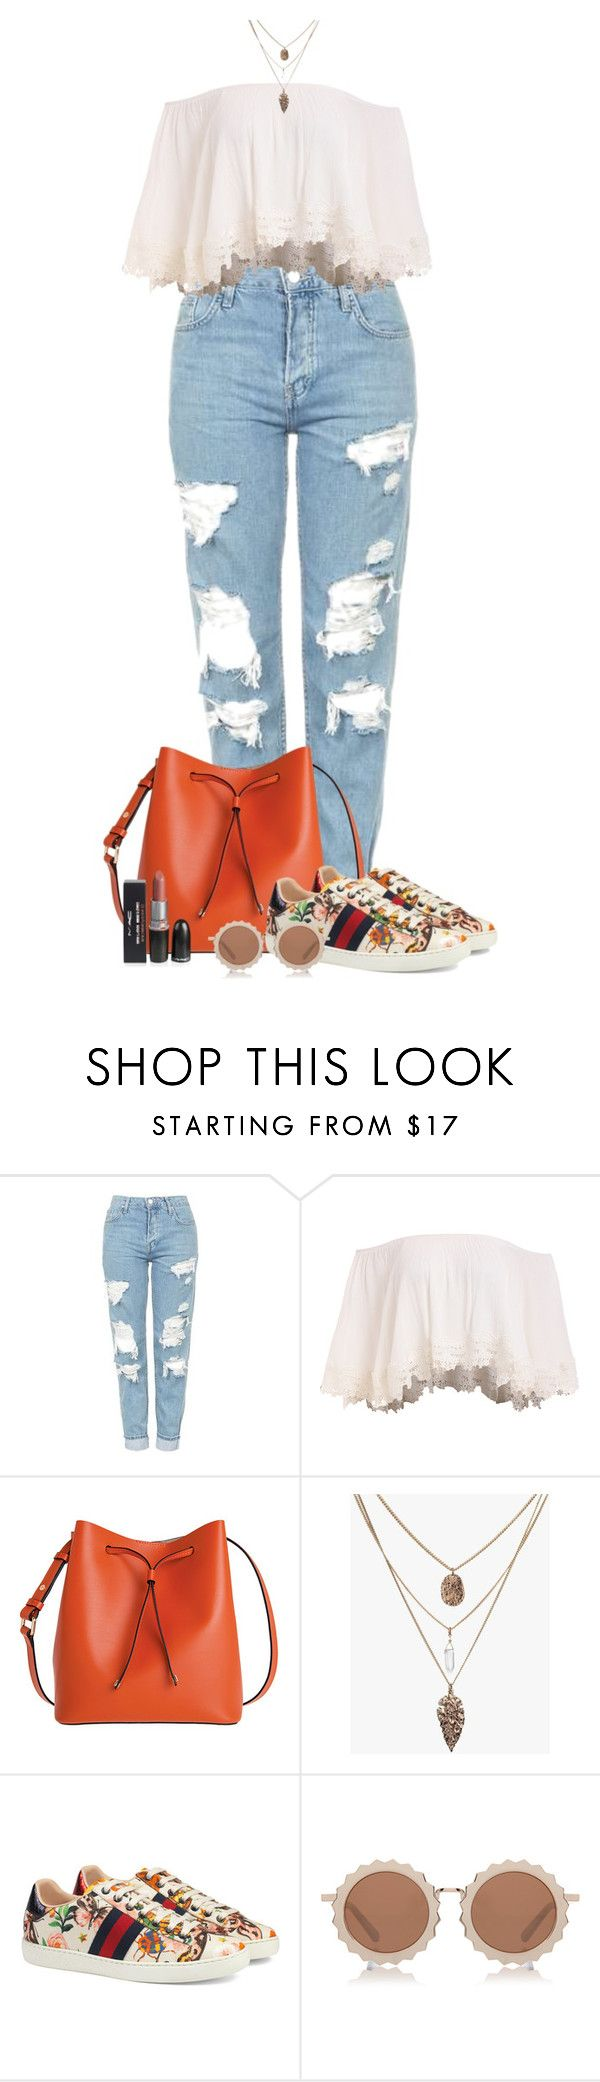 """""""Take me somewhere new"""" by blondeshoopaholic on Polyvore featuring moda, Topshop, Lodis, Gucci e House of Holland"""